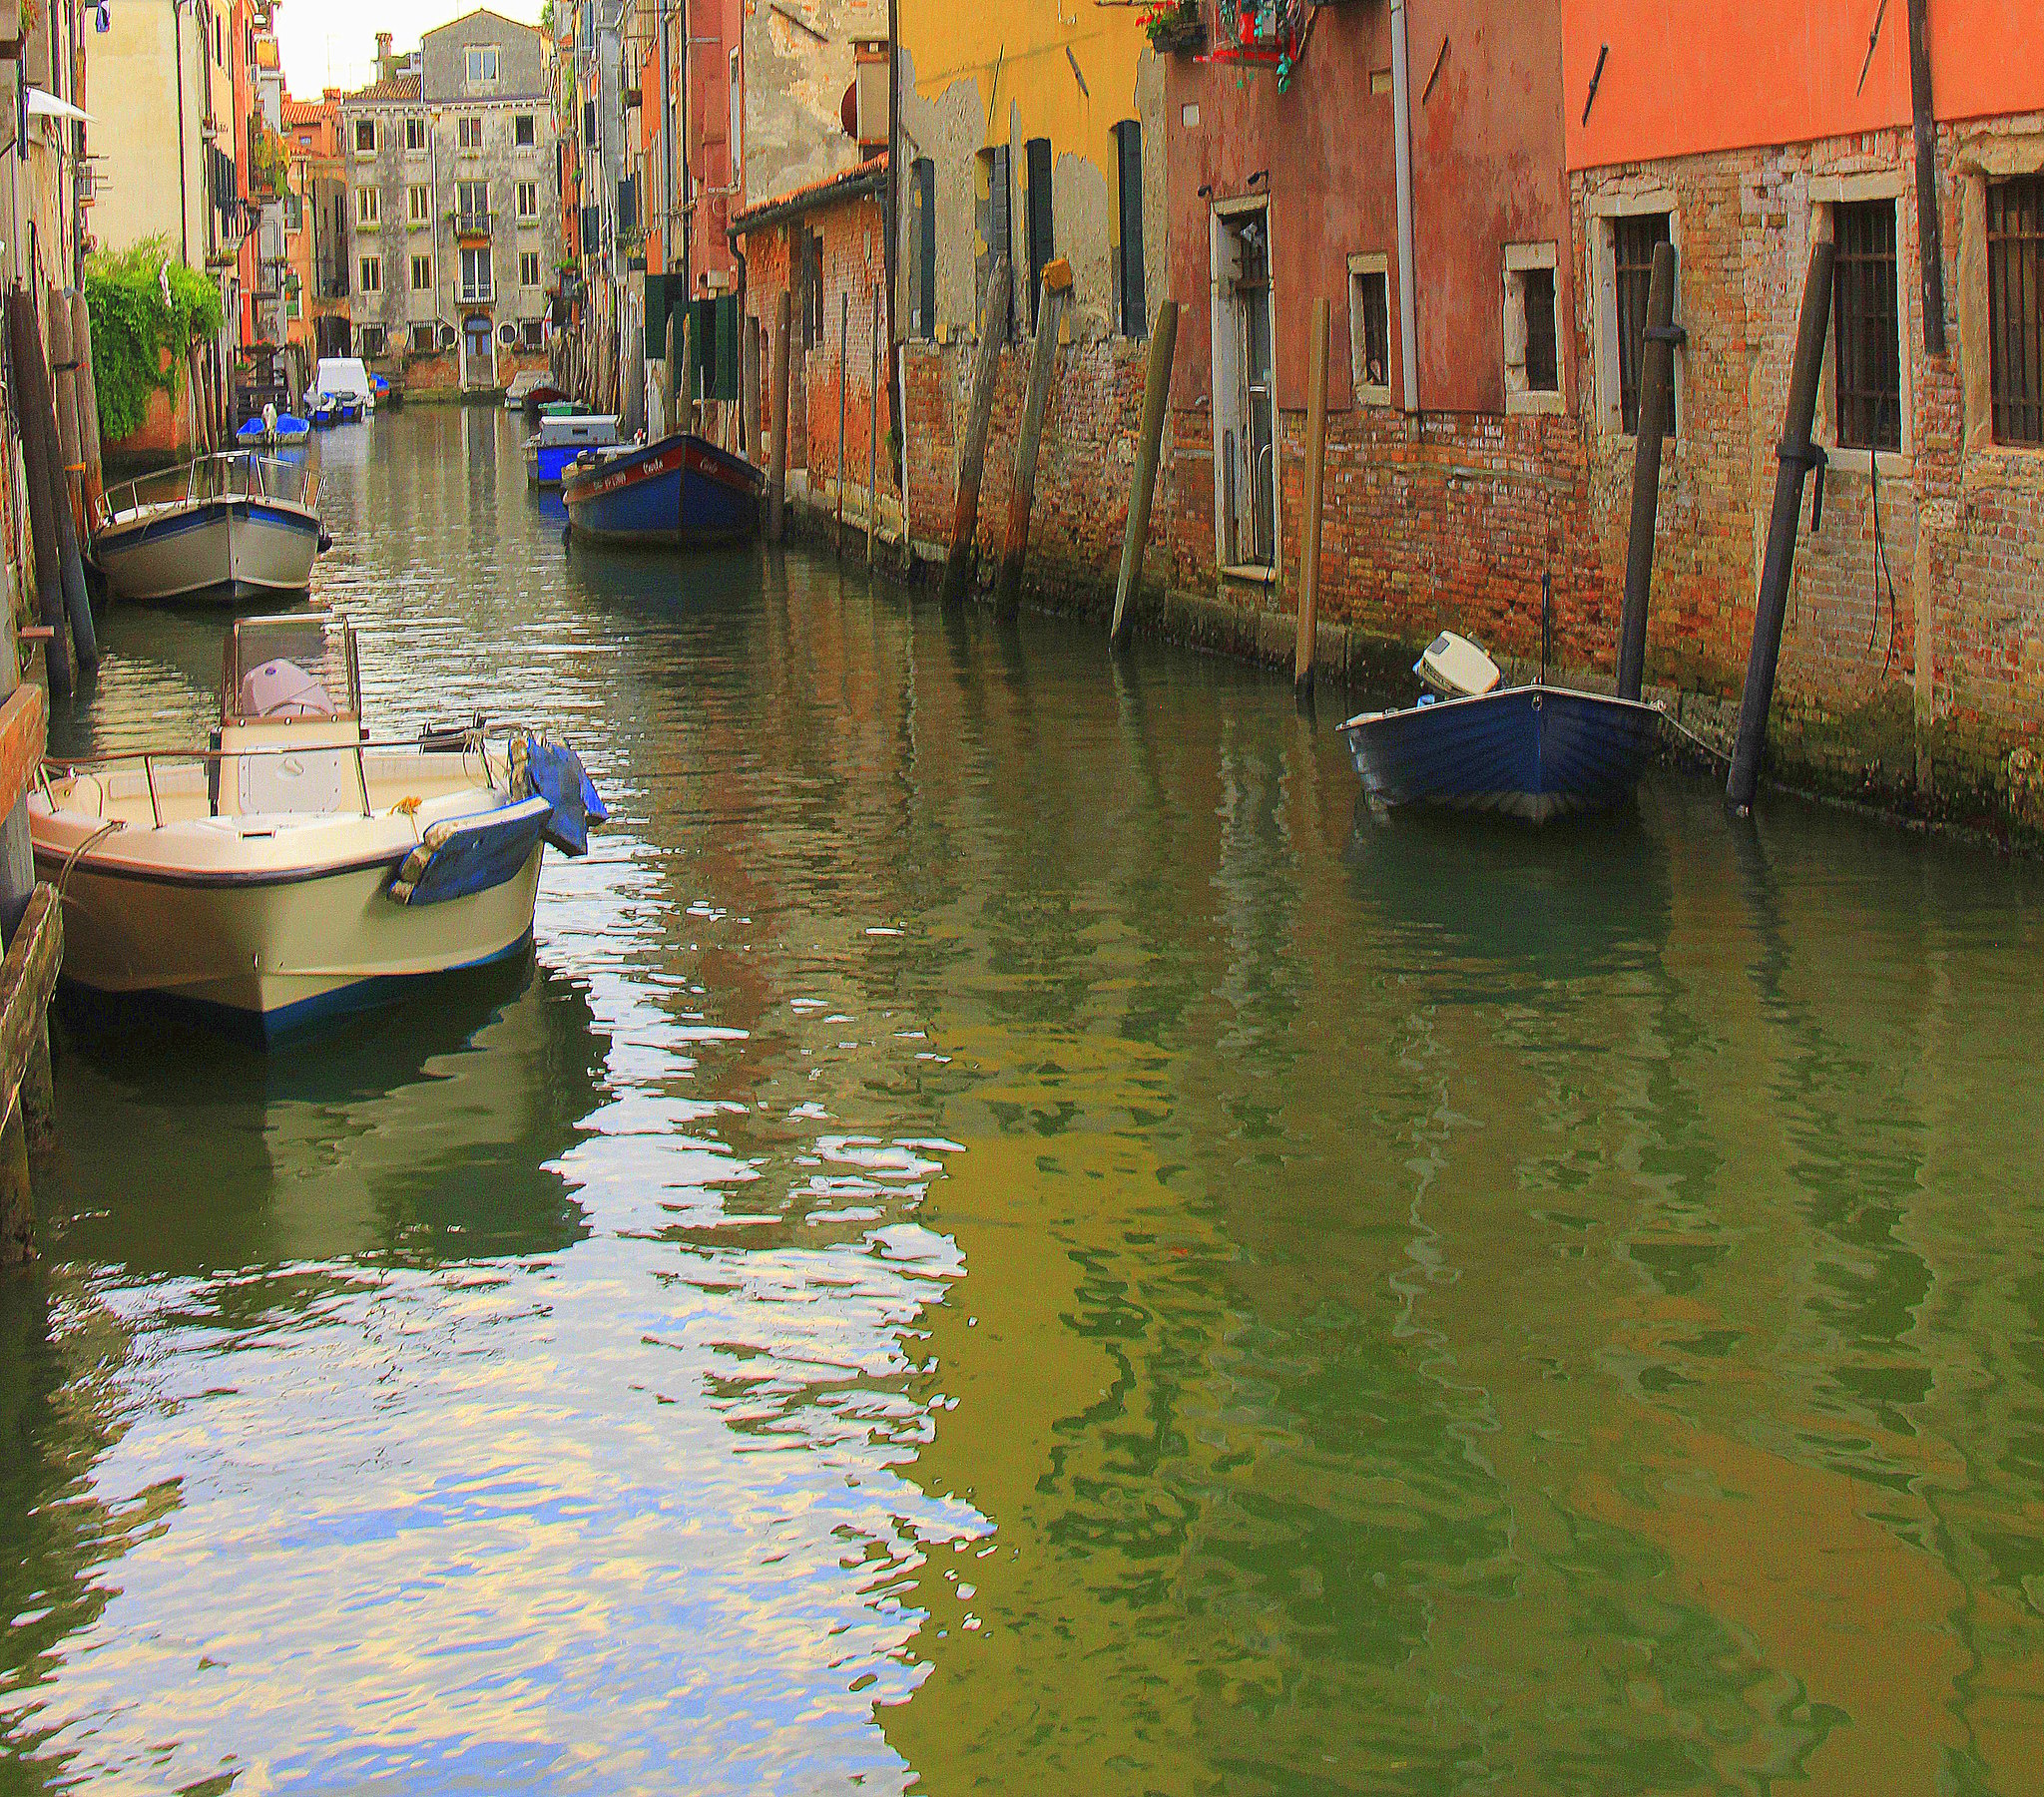 The quiet canals of residential areas of Venice